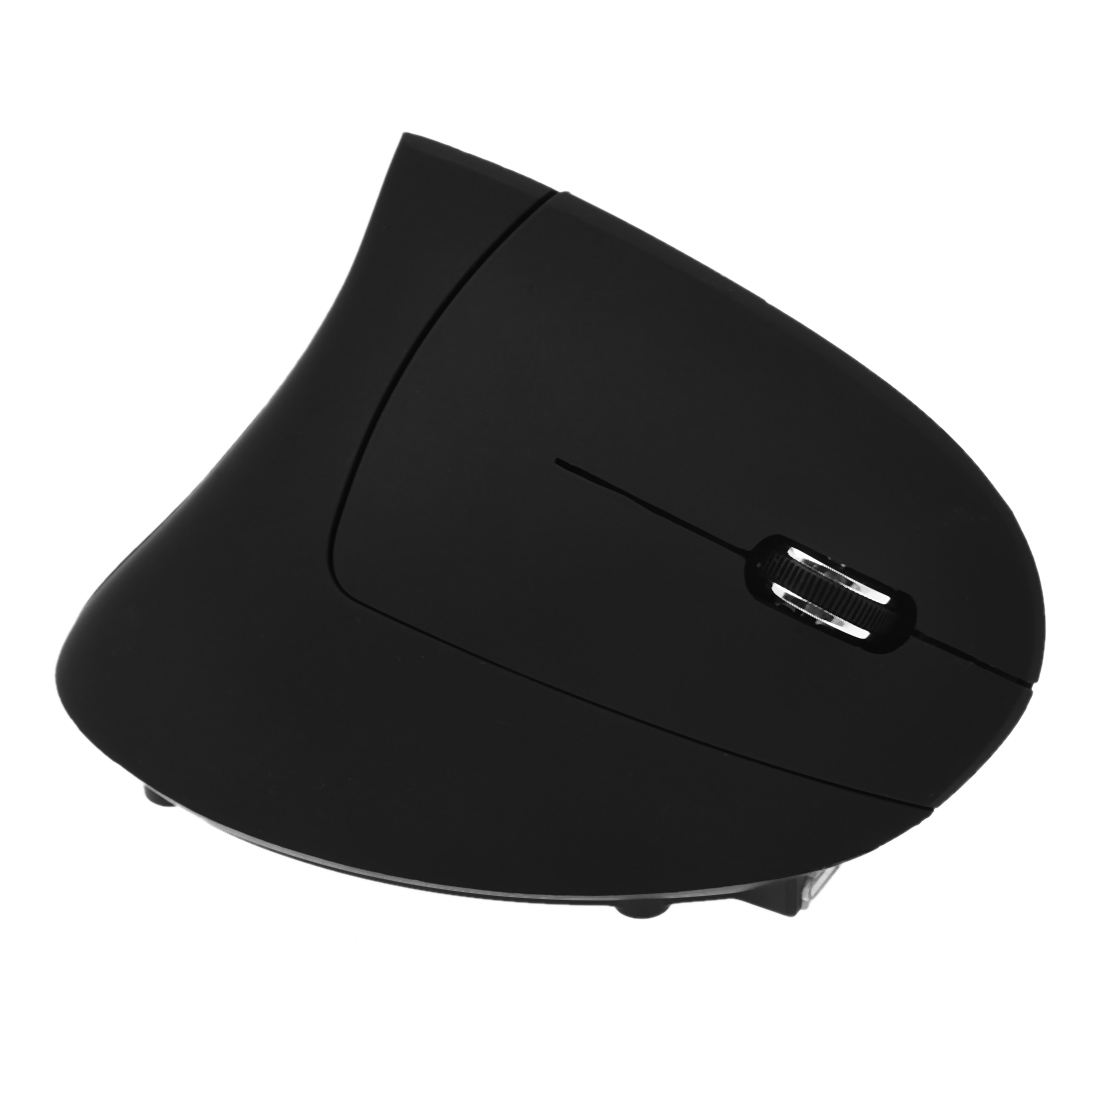 Vertical Ergonomic Optical 6-Button 2.4 GHz RF Wireless Mouse - Right Hand Orientation Black image